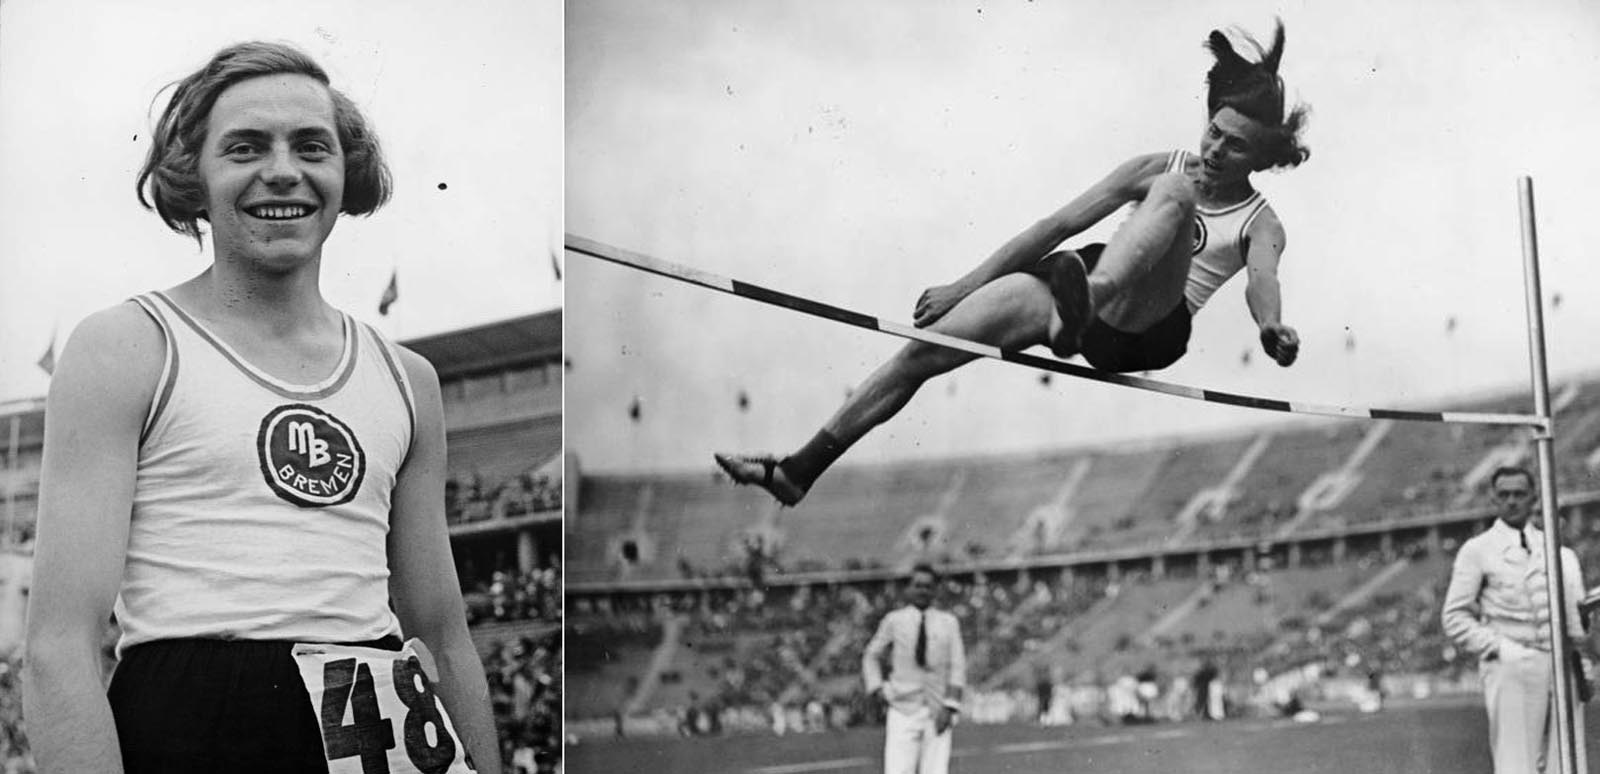 Ratjen's winning 1.63-meter jump at the 1937 German Athletics Championships.